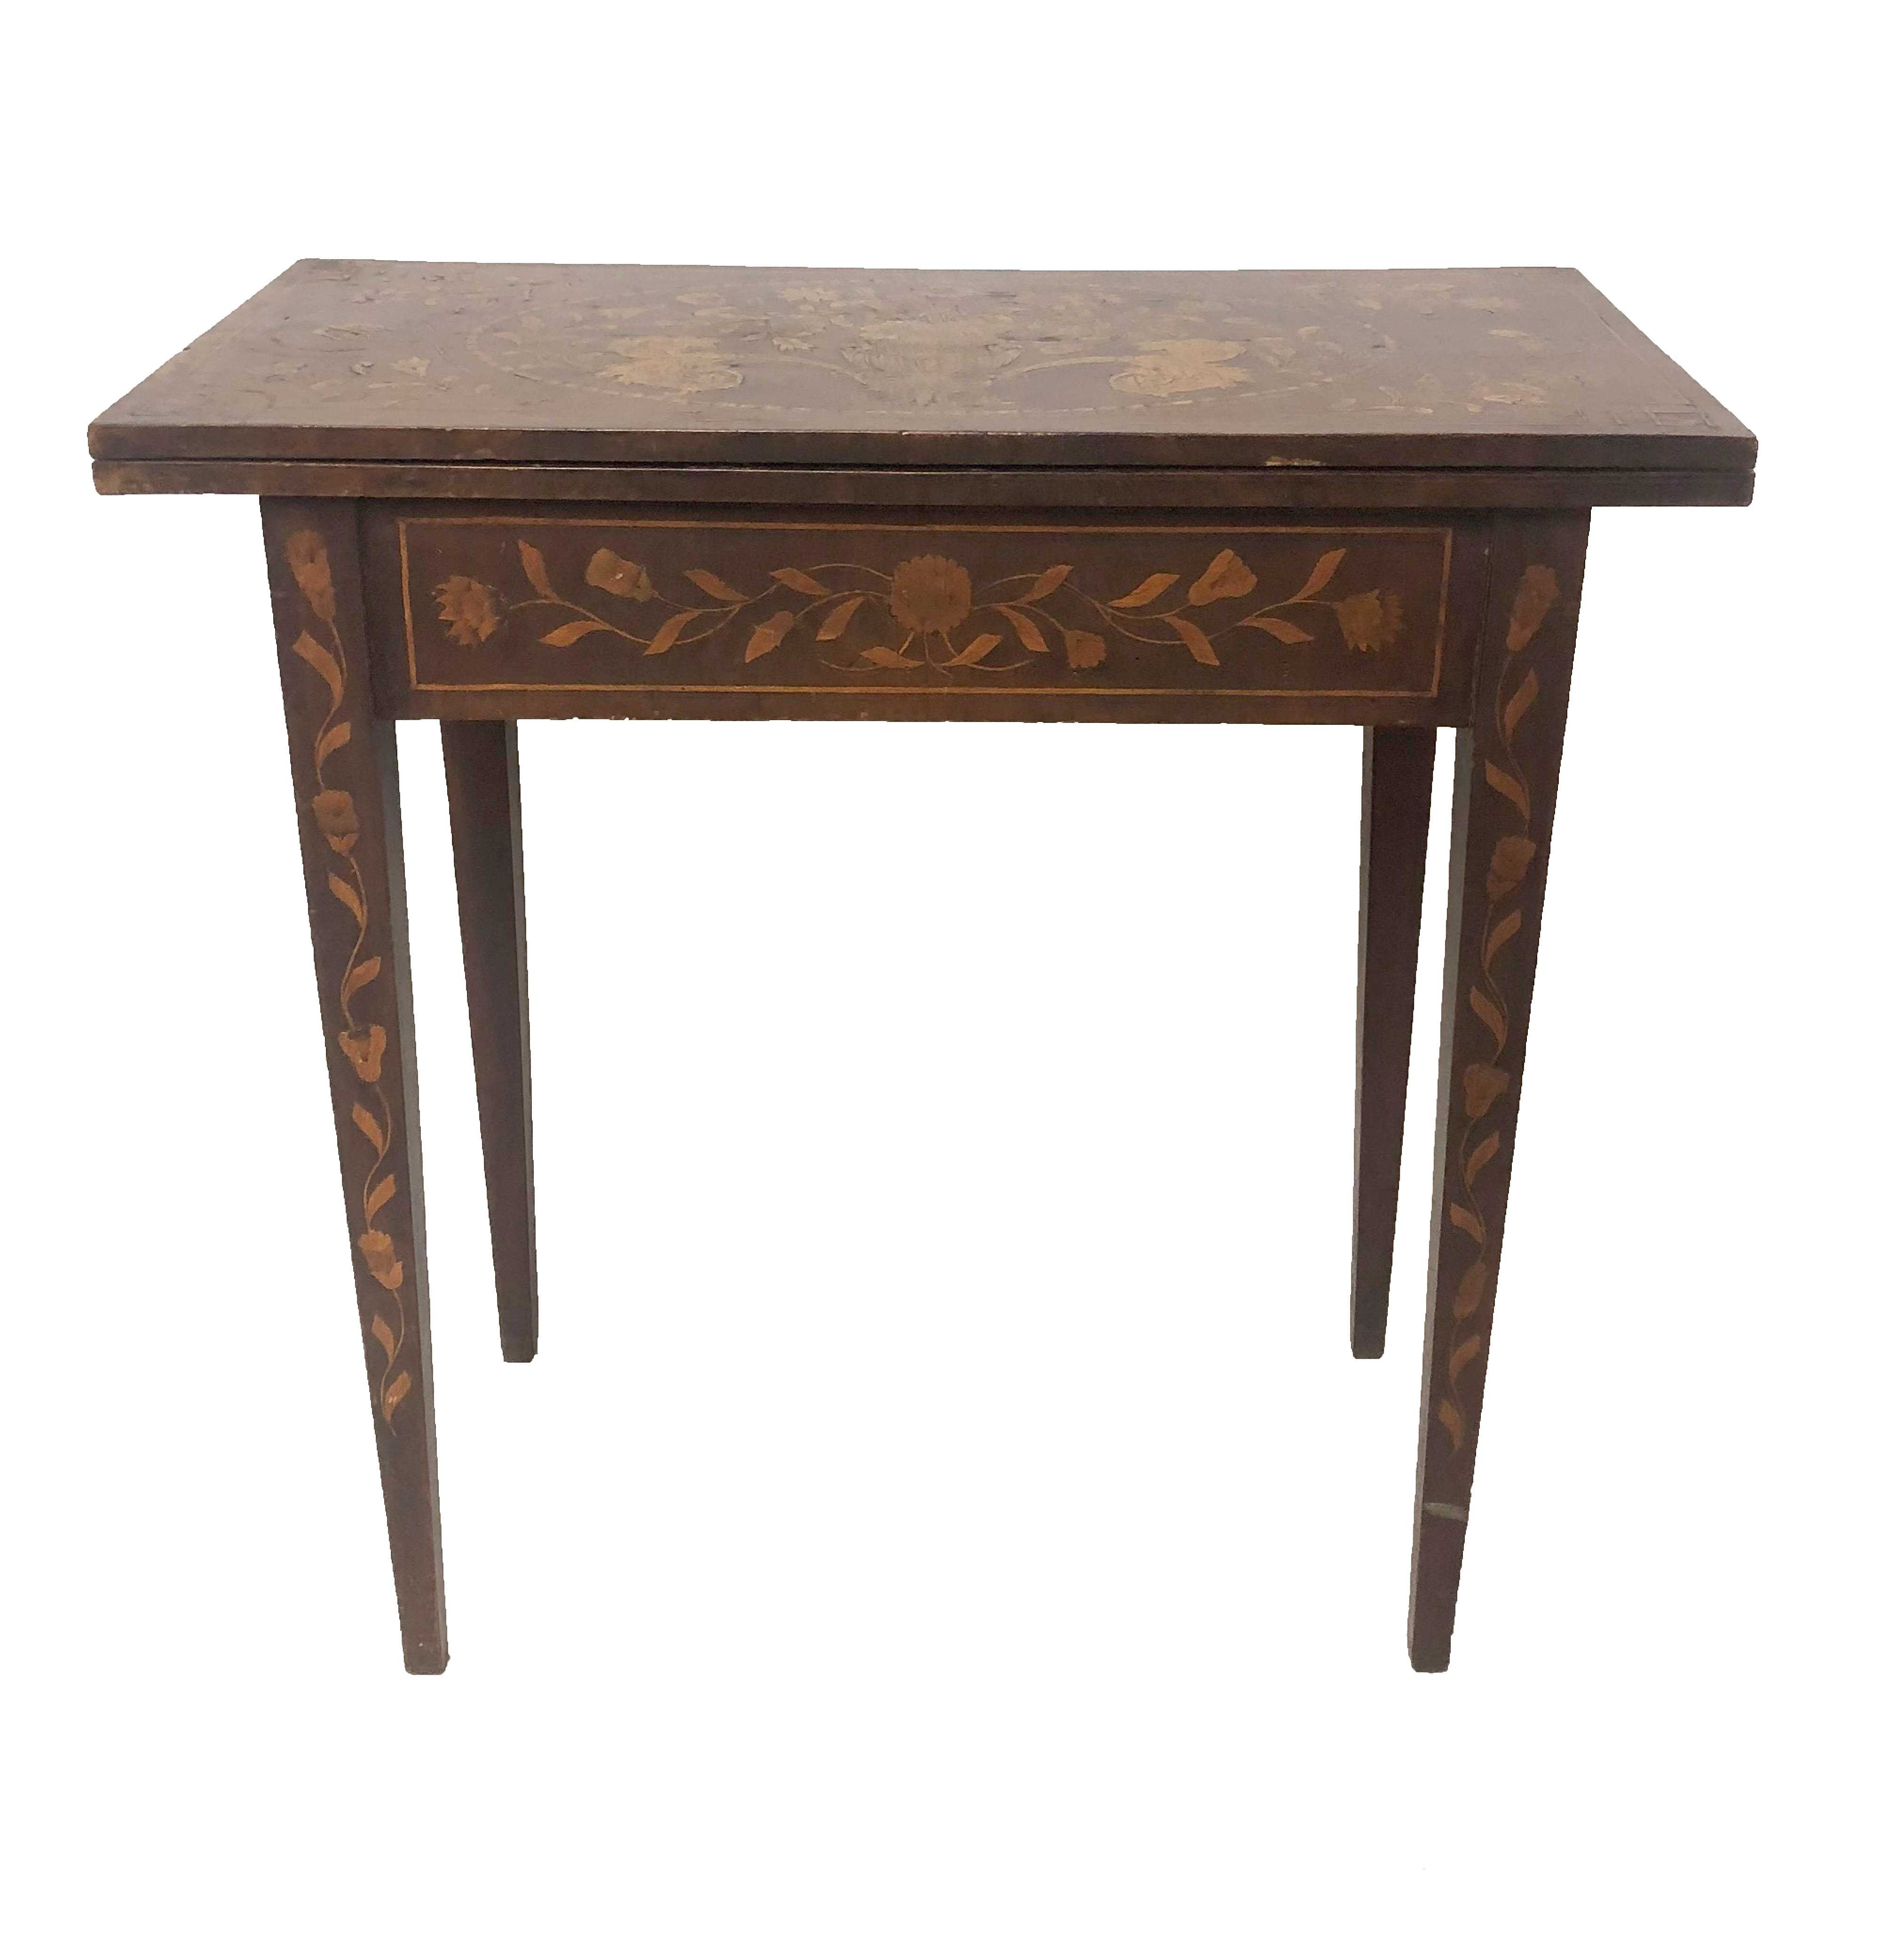 Lot 707 - A 19TH CENTURY DUTCH FLORAL MARQUETRY INLAID FOLD OVER CARD TABLE With green baize surface on square